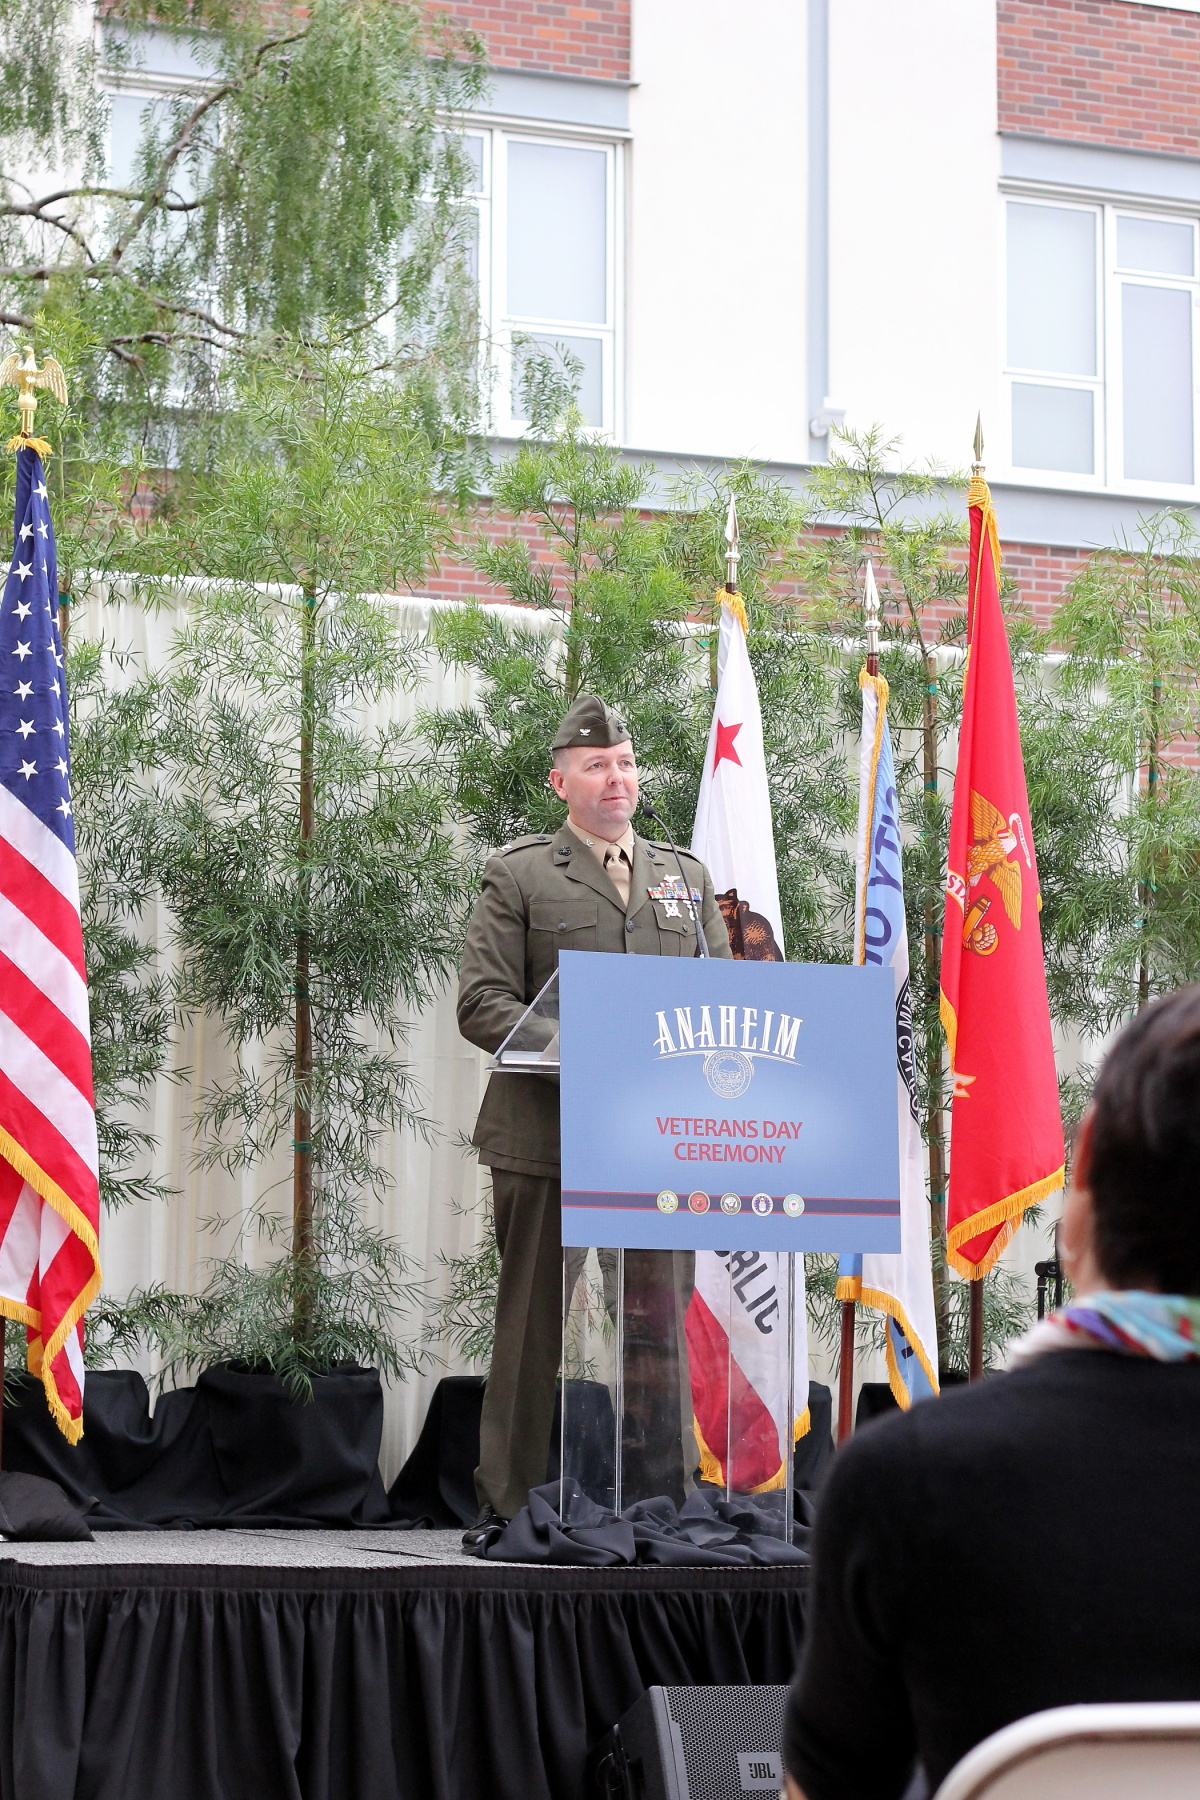 City of Anaheim Veterans Day Ceremony - Museo. Anaheim, CA 2011